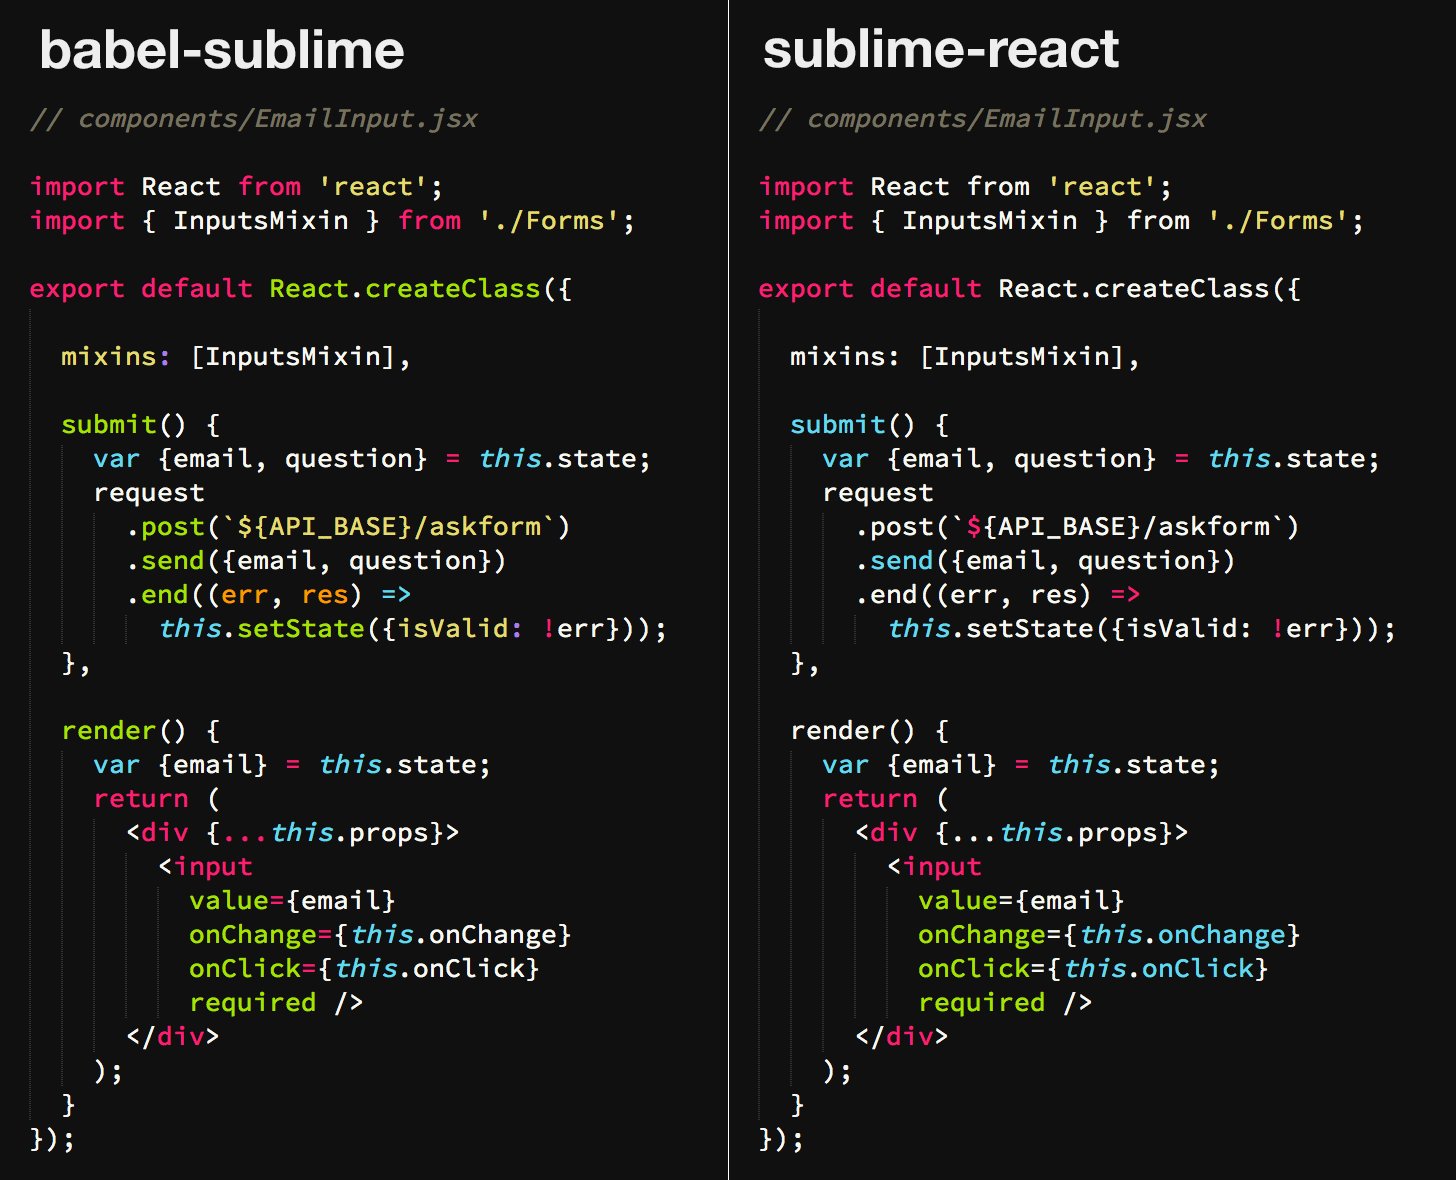 babel-sublime-vs-sublime-react--react-class